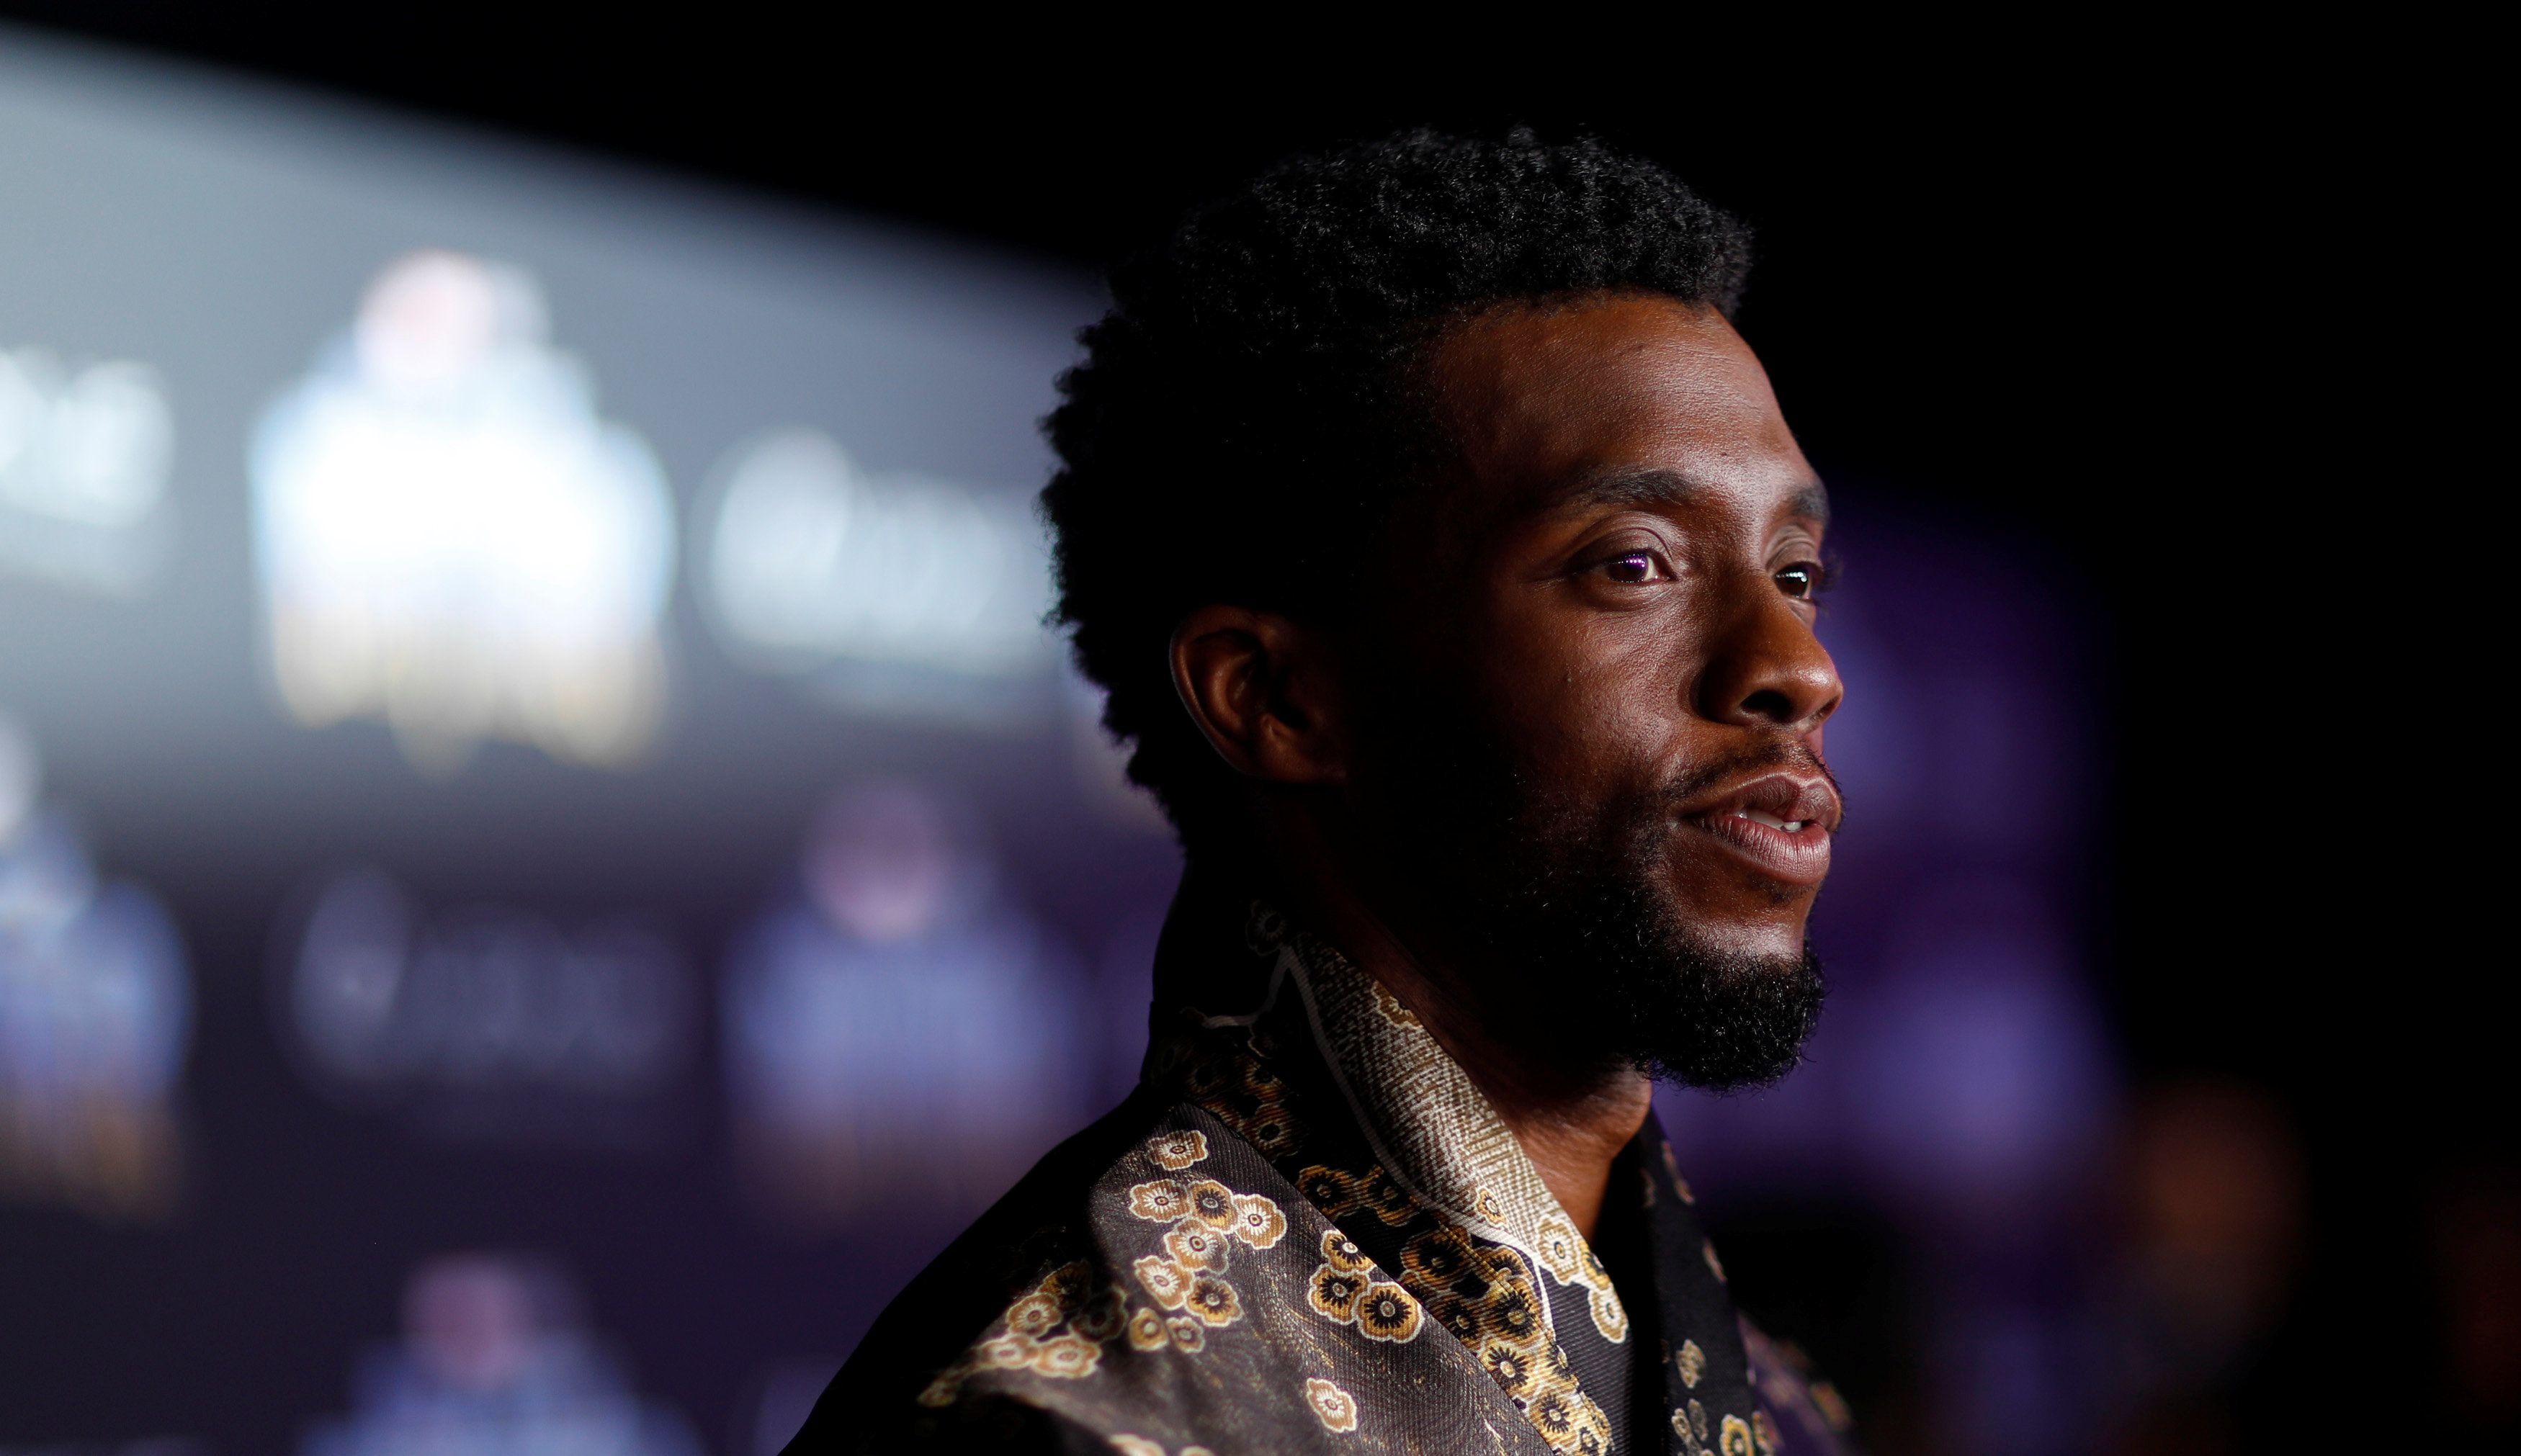 Chadwick Boseman, who plays the Black Panther, attends the movie's premiere in Los Angeles on Jan. 29.